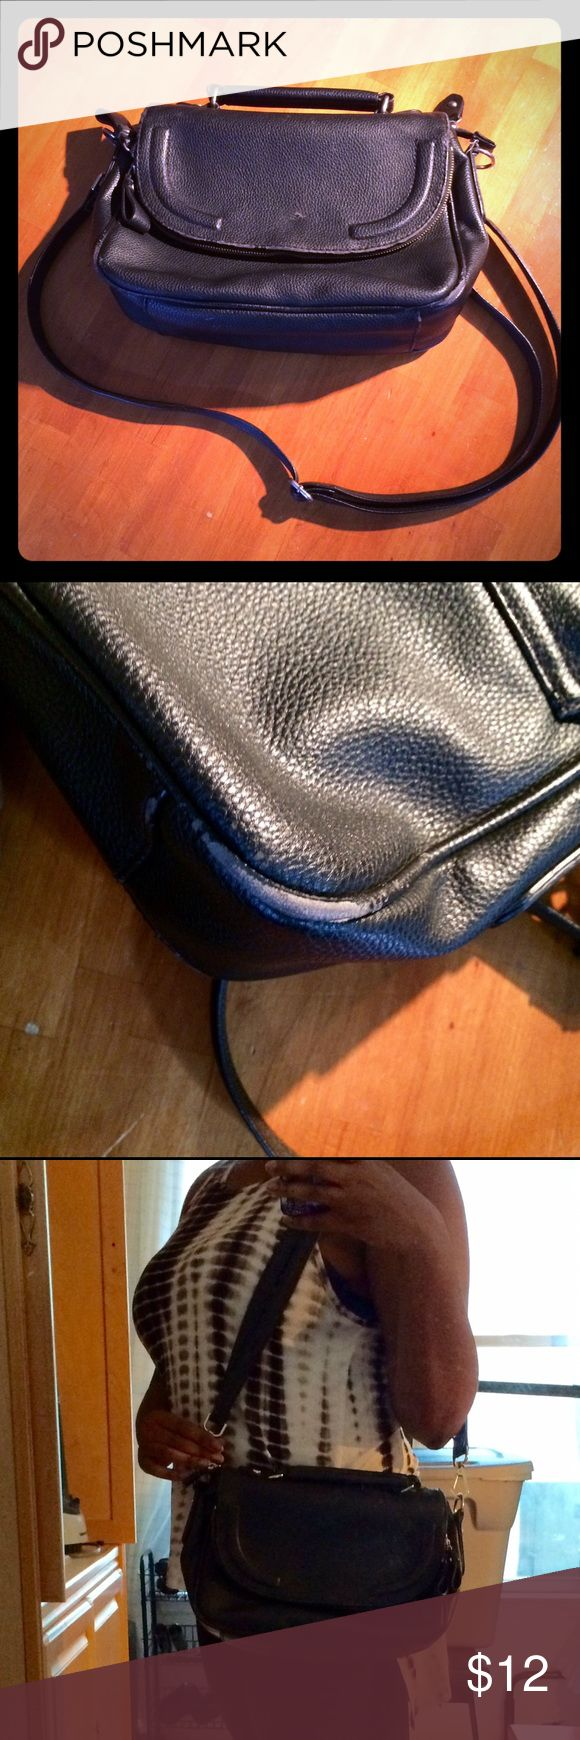 H&M purse Sleek black medium sized bag with flap zipper compartment. Normal wear, no major damage. H&M Bags